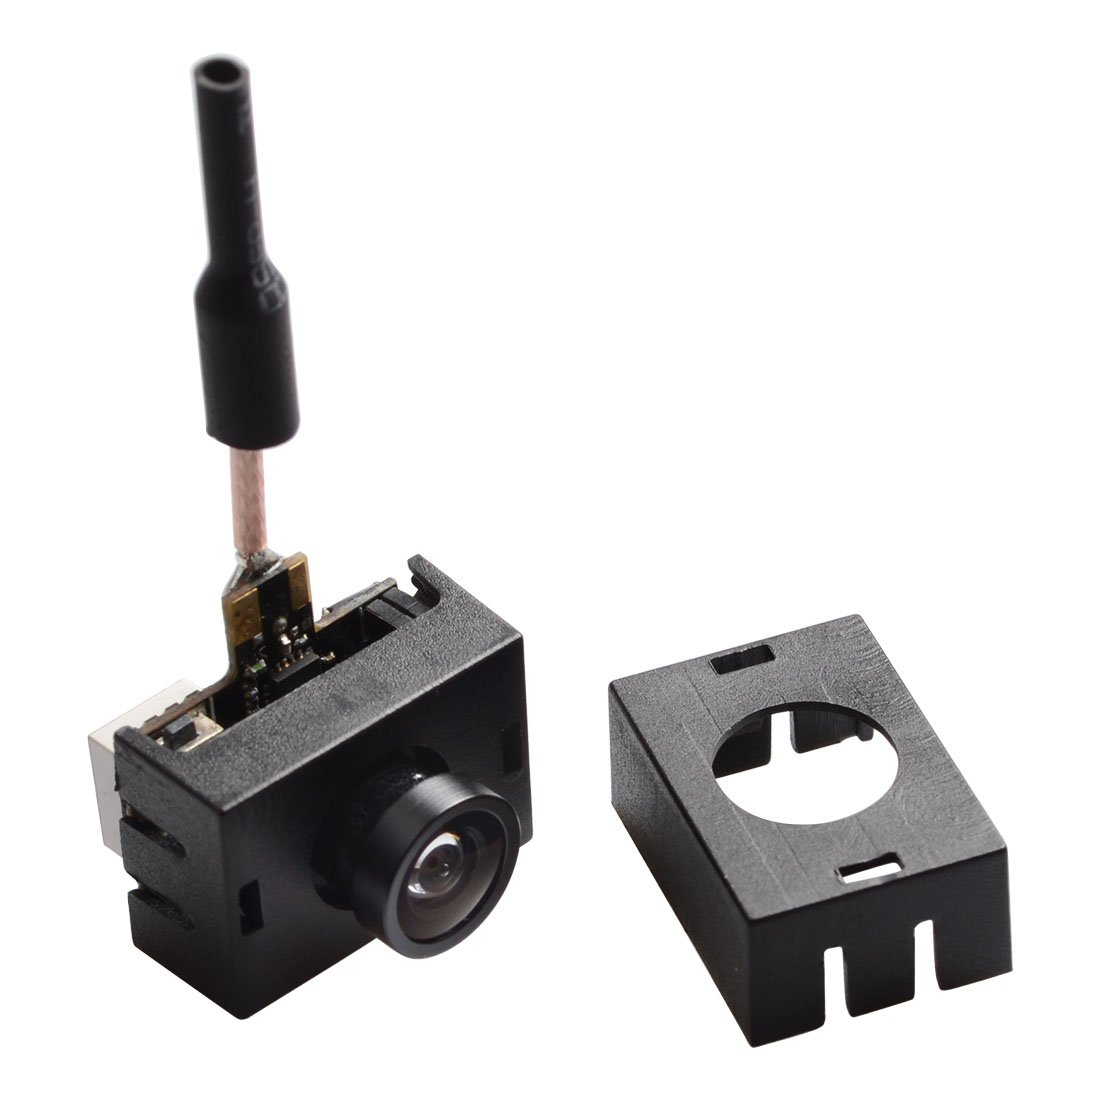 Wolfwhoop 4pcs FPV Camera Mount Inductrix Tiny Whoop for Quadcopter Camera Like WT01 WT02 WT03